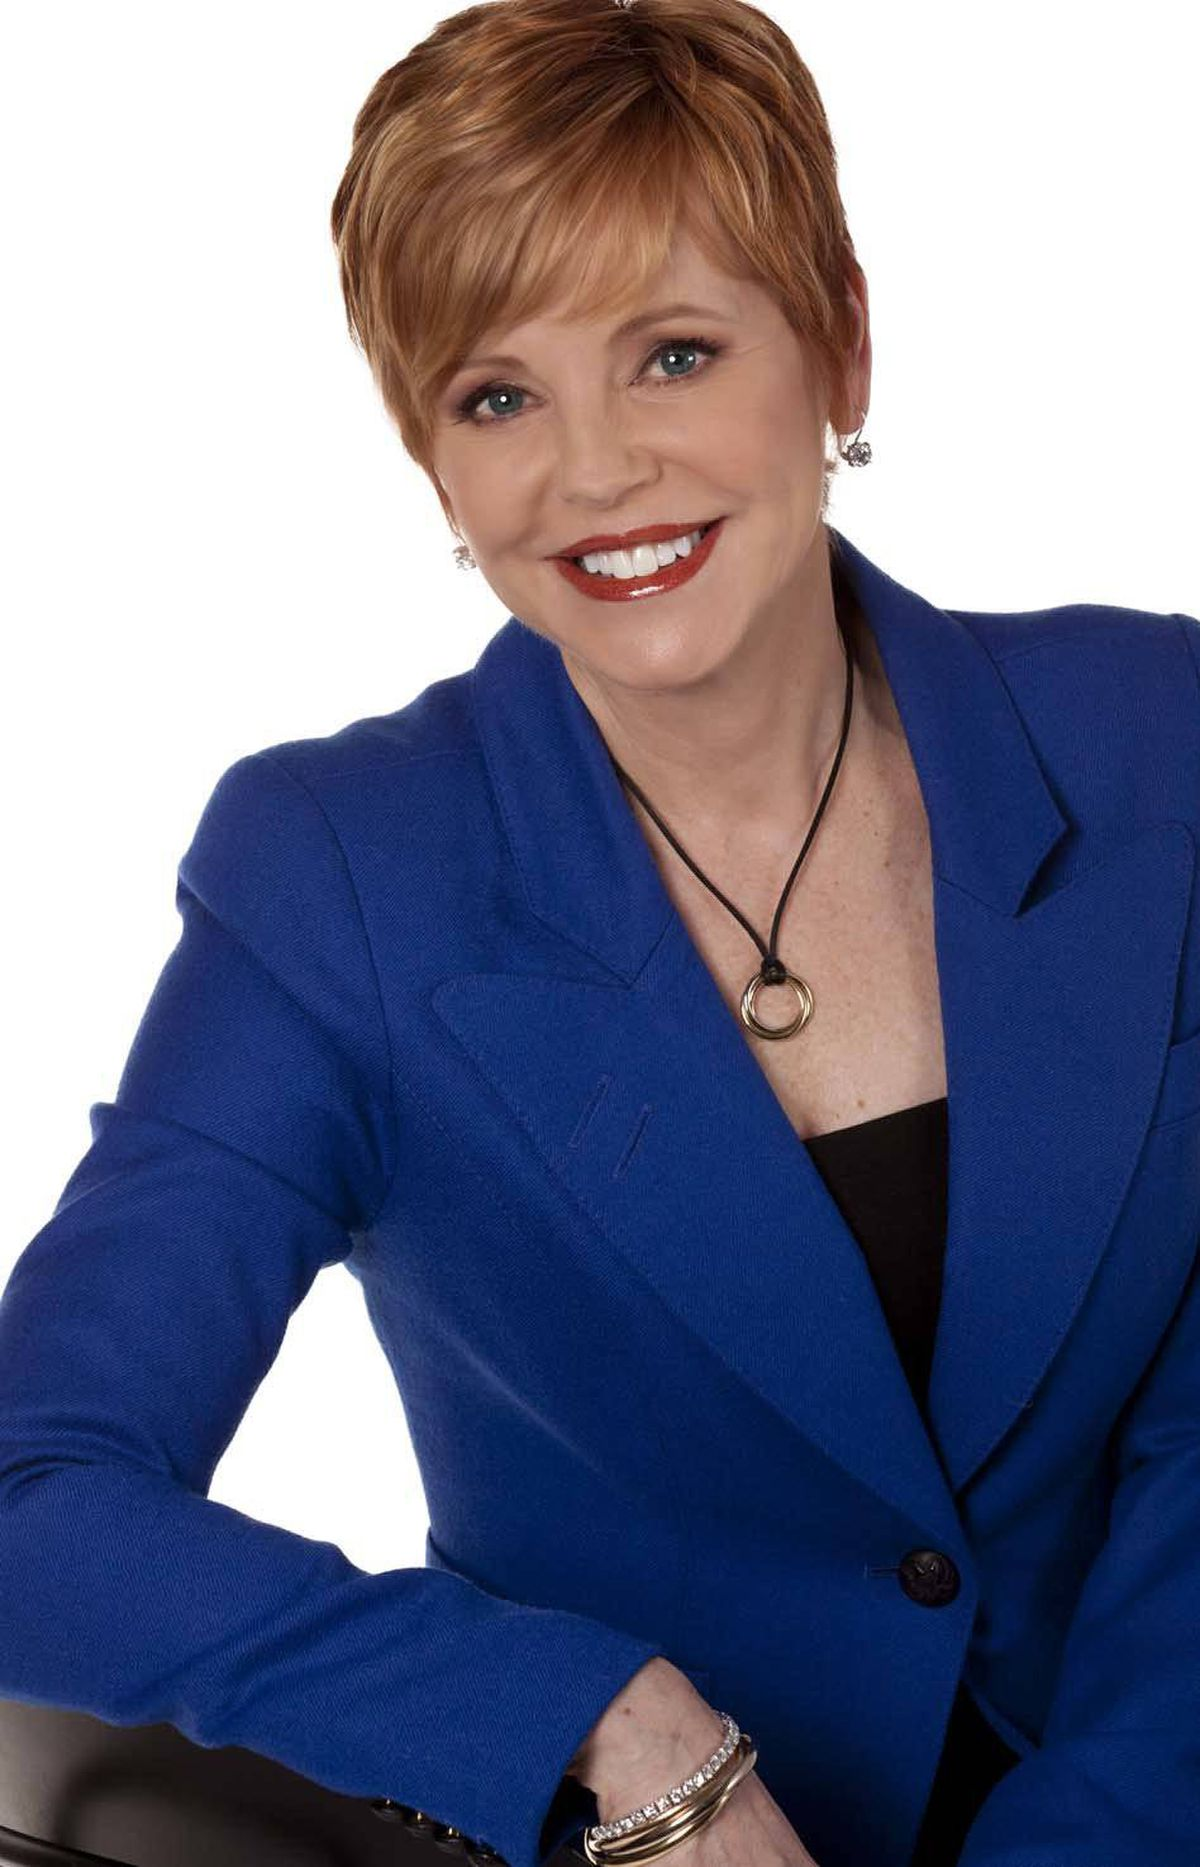 """FINANCE The Pattie Lovett-Reid Show CTV News Channel, 8 p.m. ET; 5 p.m. PT Debuting tonight, this series provides a new broadcast platform for financial guru Patricia Lovett-Reid, best known for hosting the BNN program MoneyTalk. Her goal is teach Canadians how to save money and stretch their income. Viewers are invited to call into the live broadcast to obtain personal advice from Ms. Lovett-Reid. Regular segments include Lessons Learned, which provides tips from experts, and Financial Focus, which delivers big-picture money planning. And in each episode, the host takes to the street to offer people a chance to """"Ask Pattie"""" their own money questions. Hey, is anybody else offering you free financial advice these days?"""